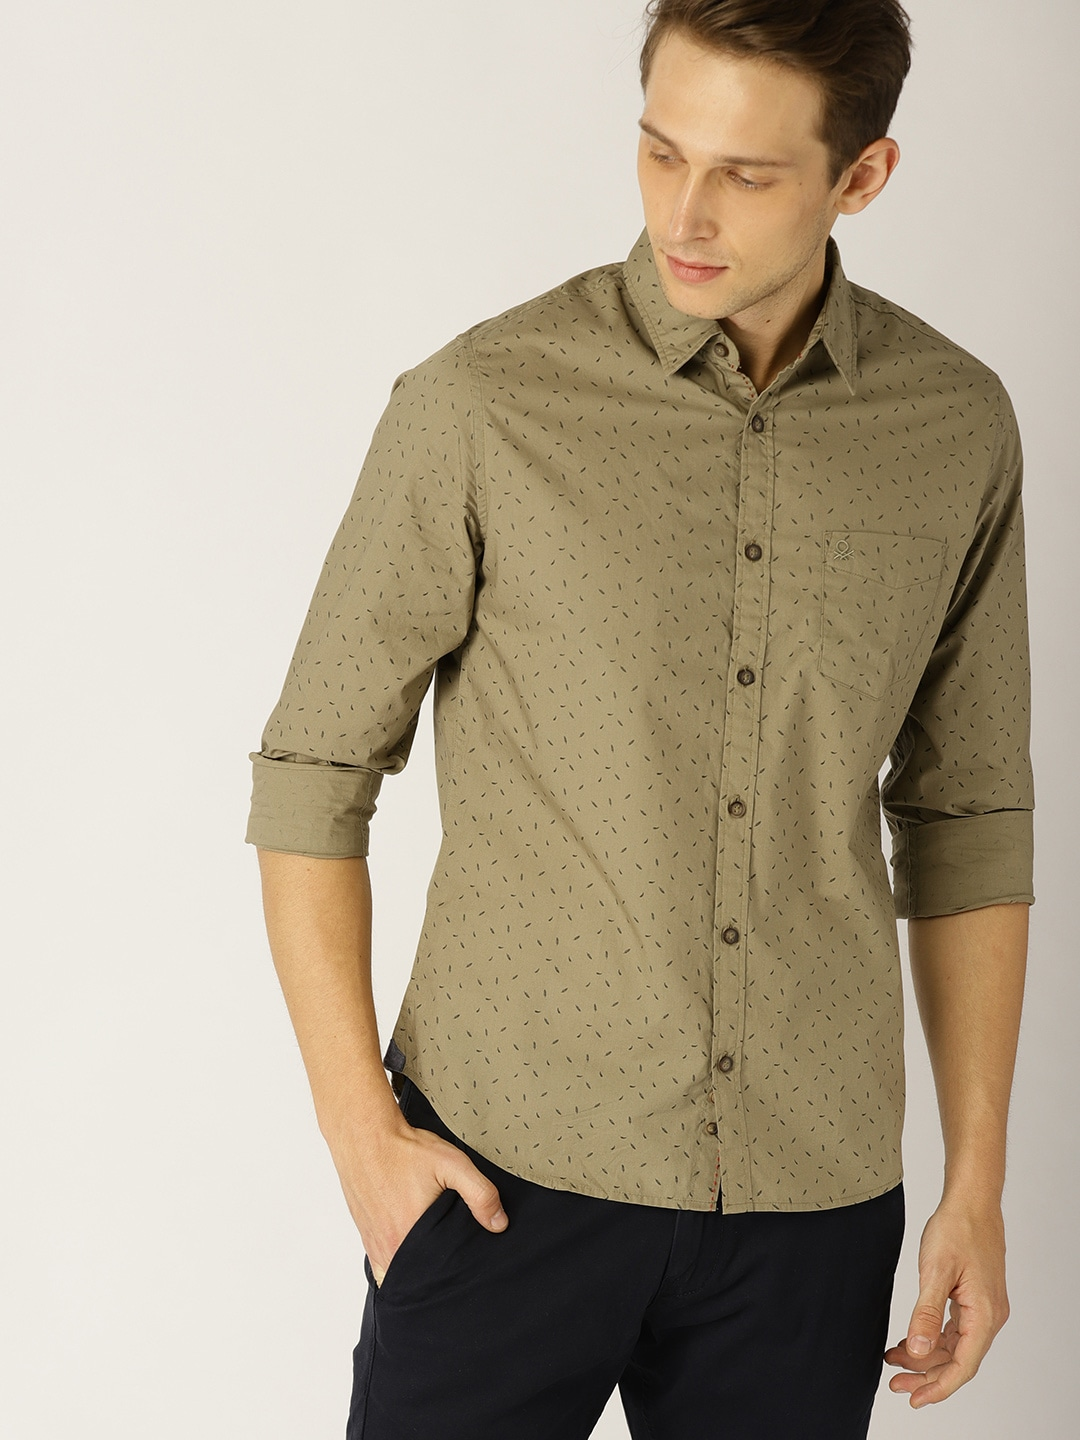 United Colors Of Benetton Shirts Buy United Colors Of Benetton